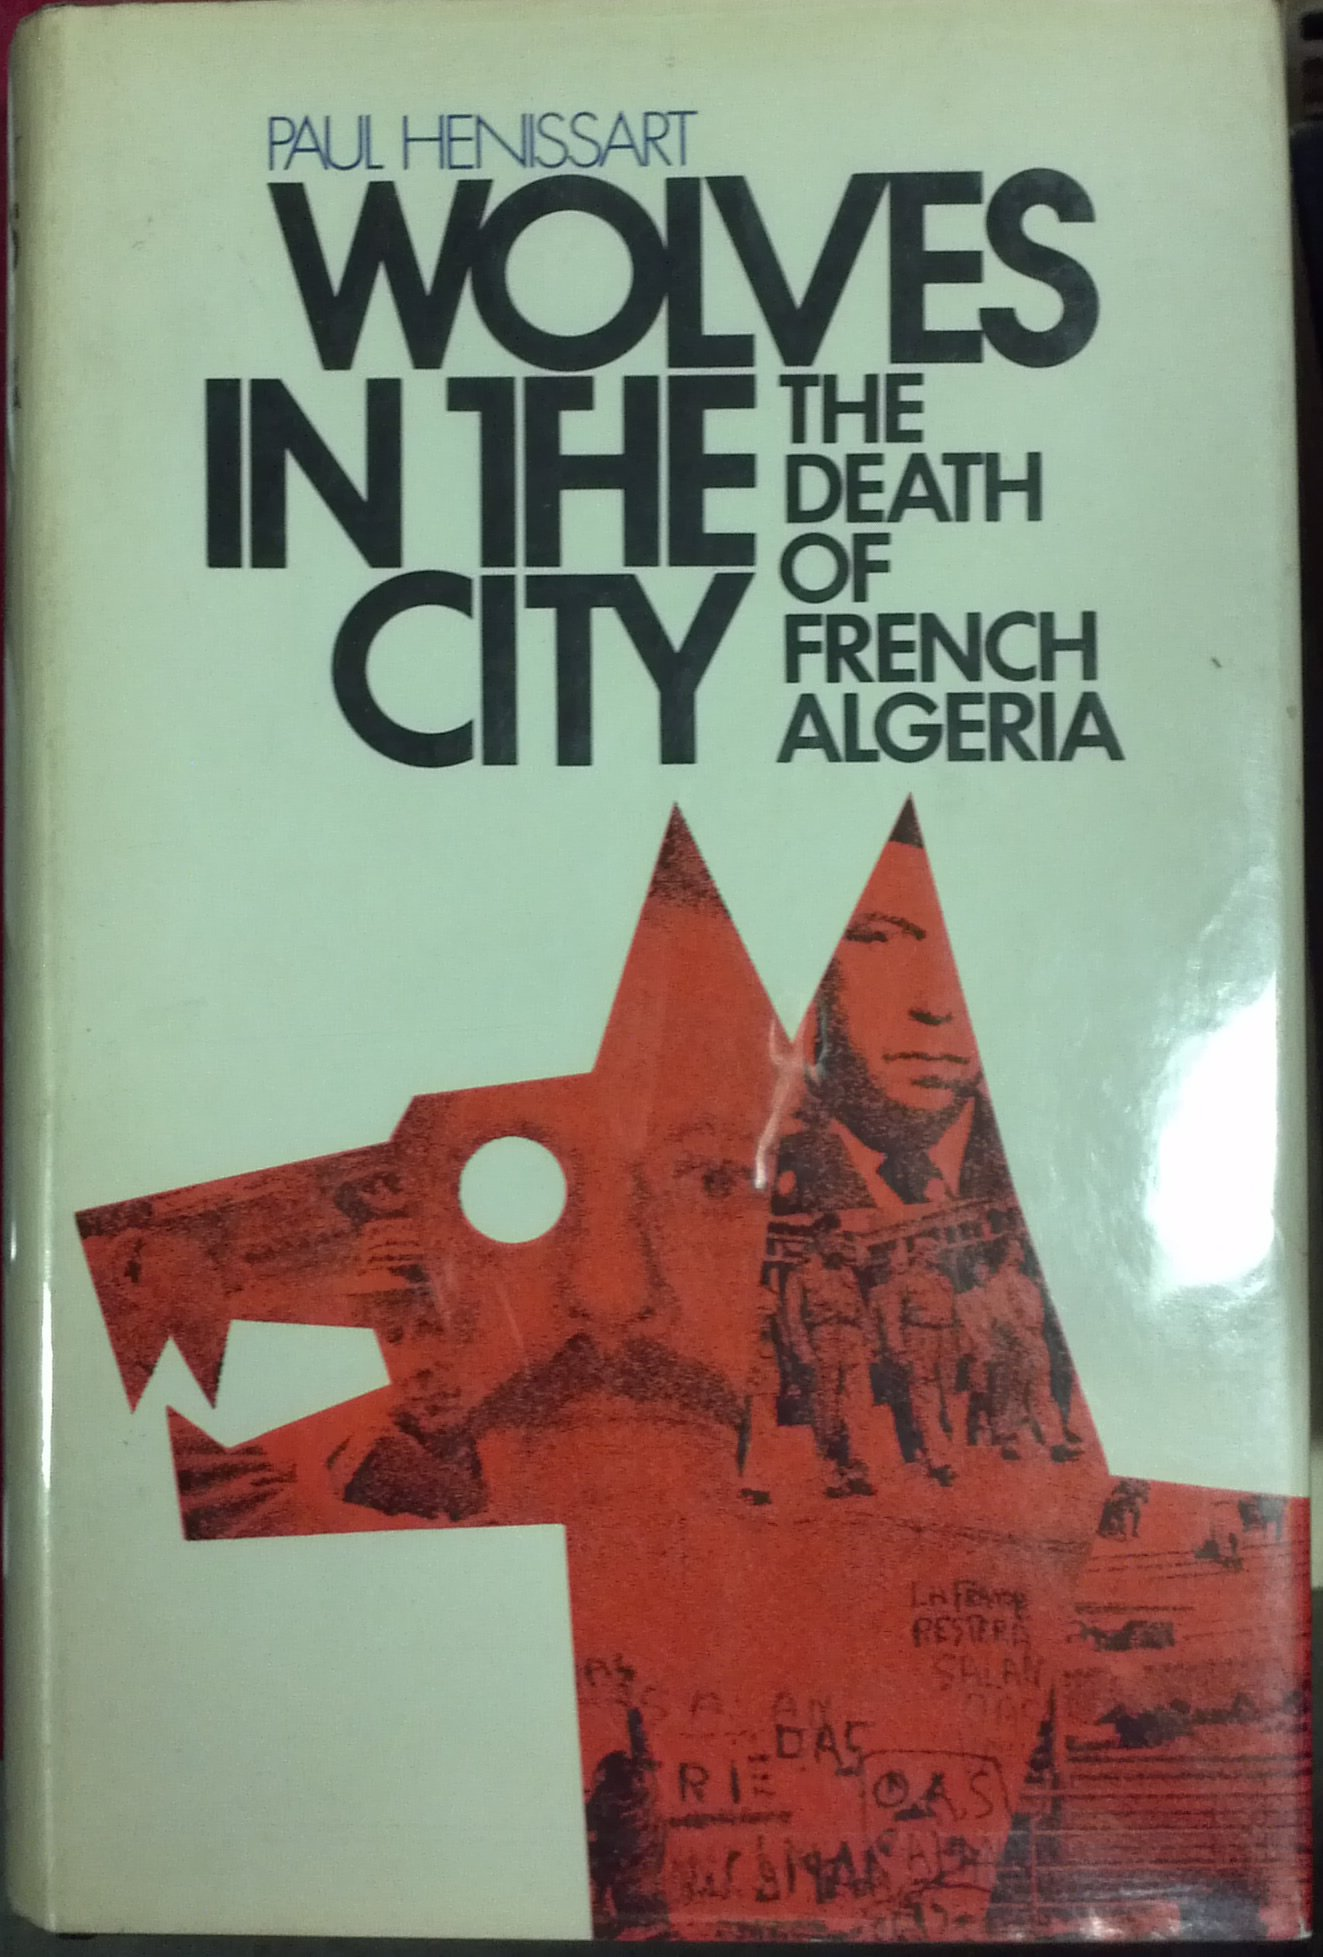 Wolves in the City: The Death of French Algeria